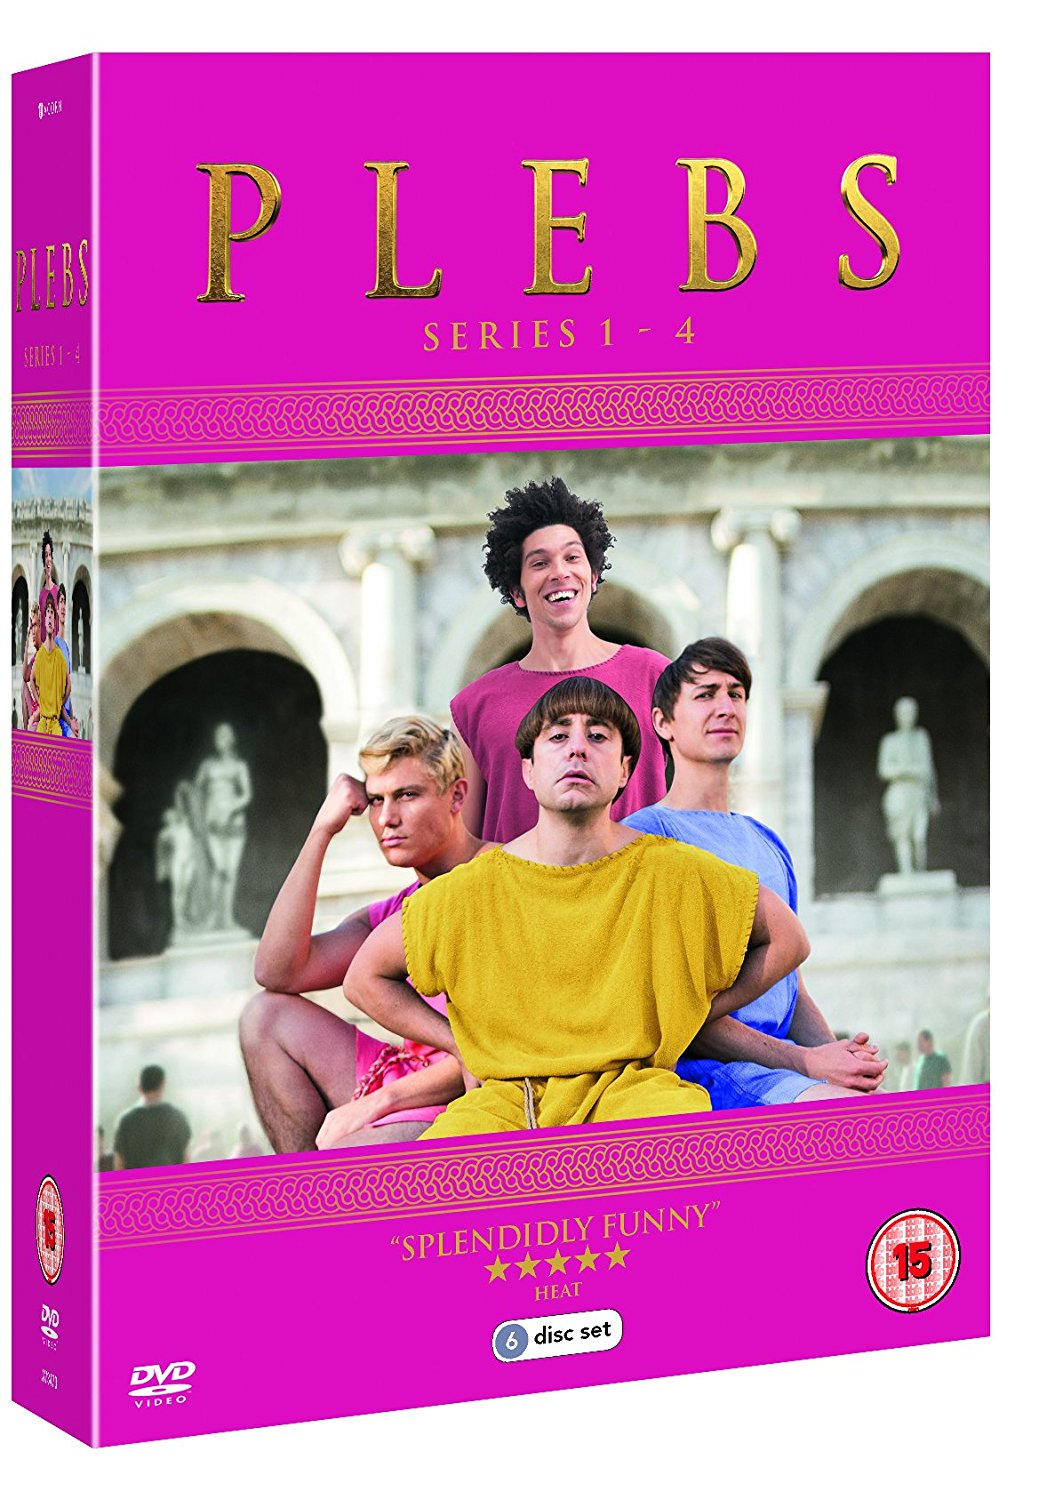 boom competitions - win a Plebs boxset on DVD